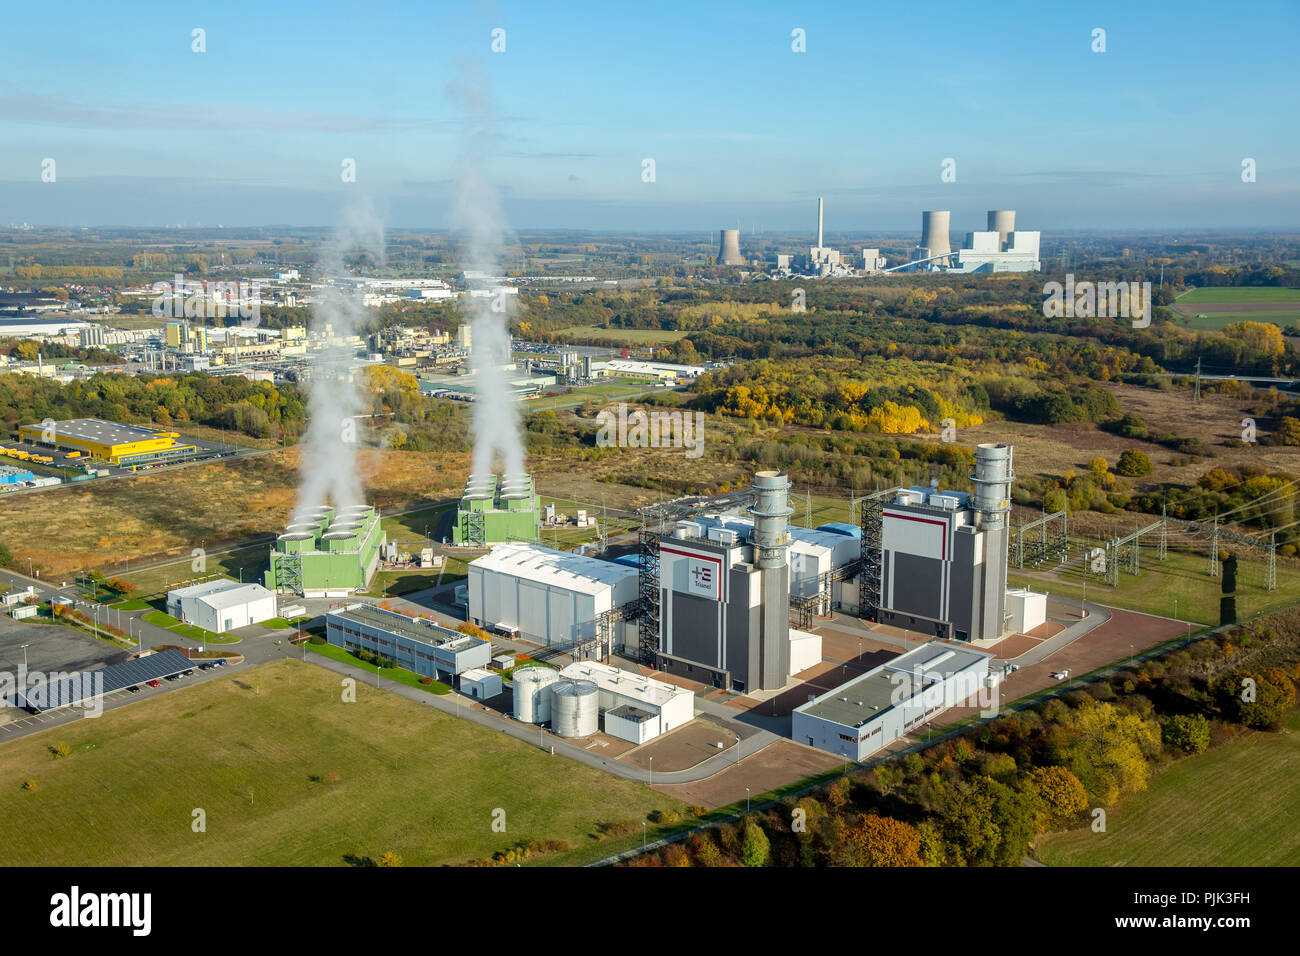 Aerial view, Trianel gas power plant Hamm GmbH & Co. KG, GUD, cloud of smoke, water vapor, gas turbine power plant in operation, Hamm, Ruhr area, North Rhine-Westphalia, Germany - Stock Image